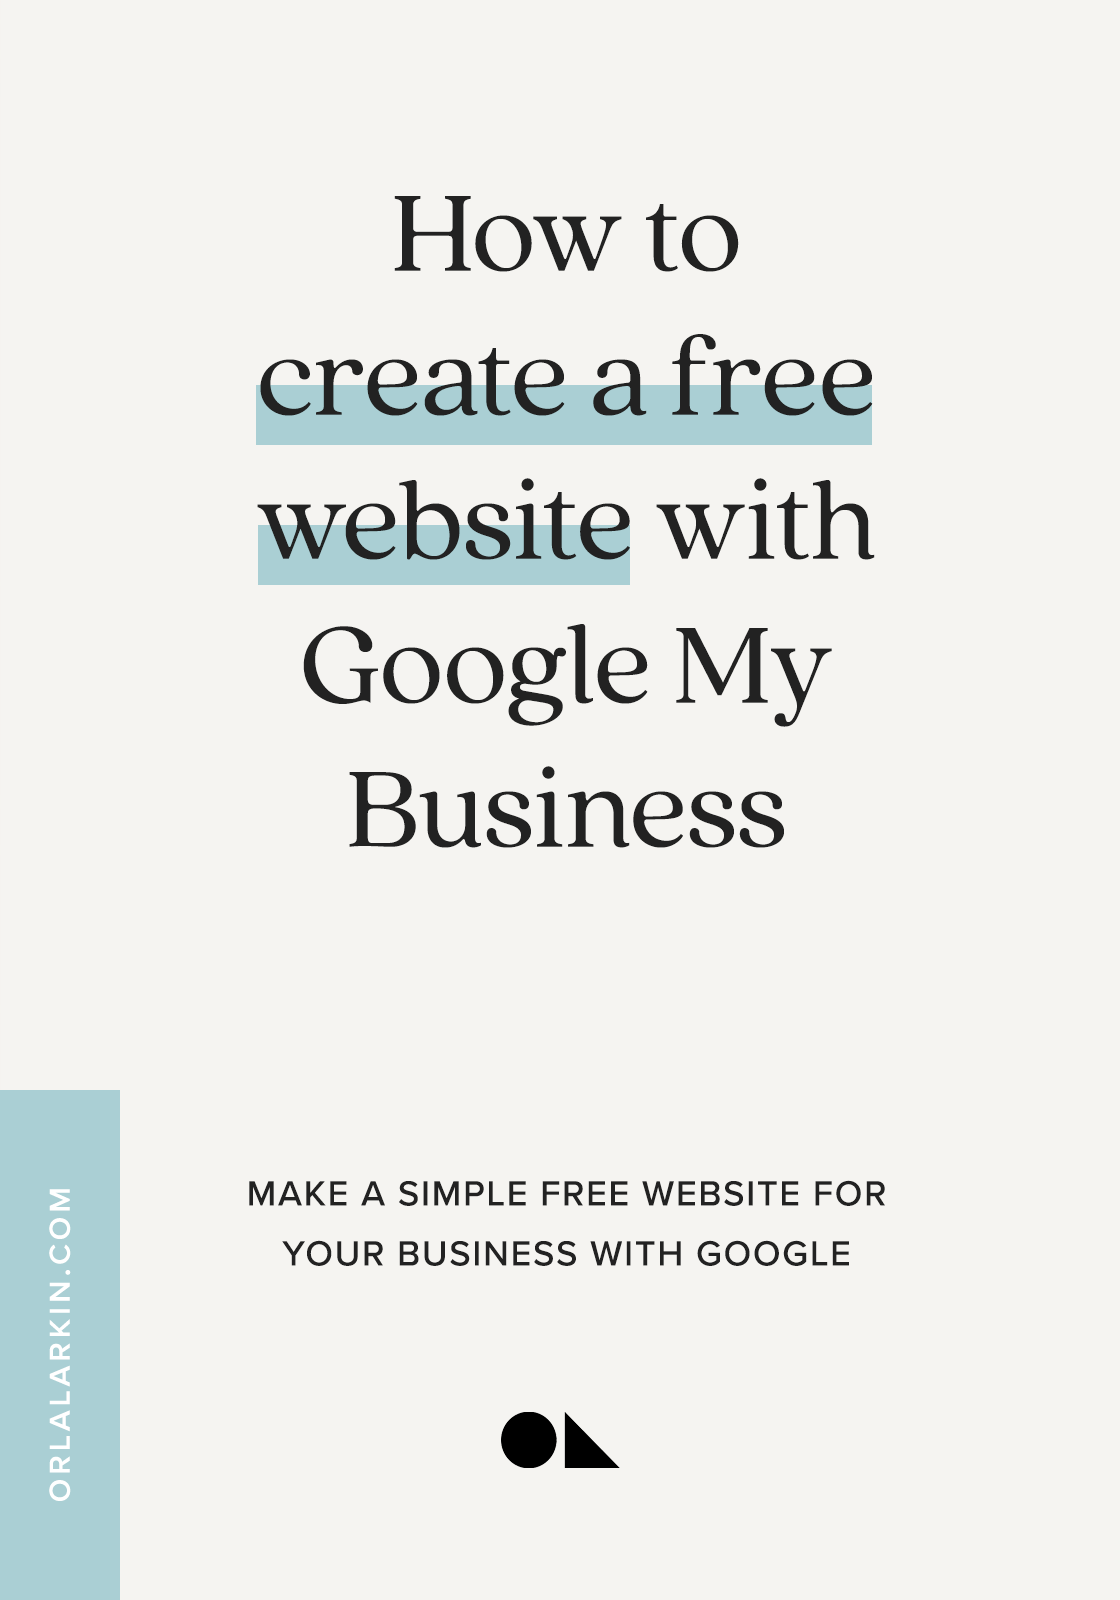 How to create a free website with Google My Business